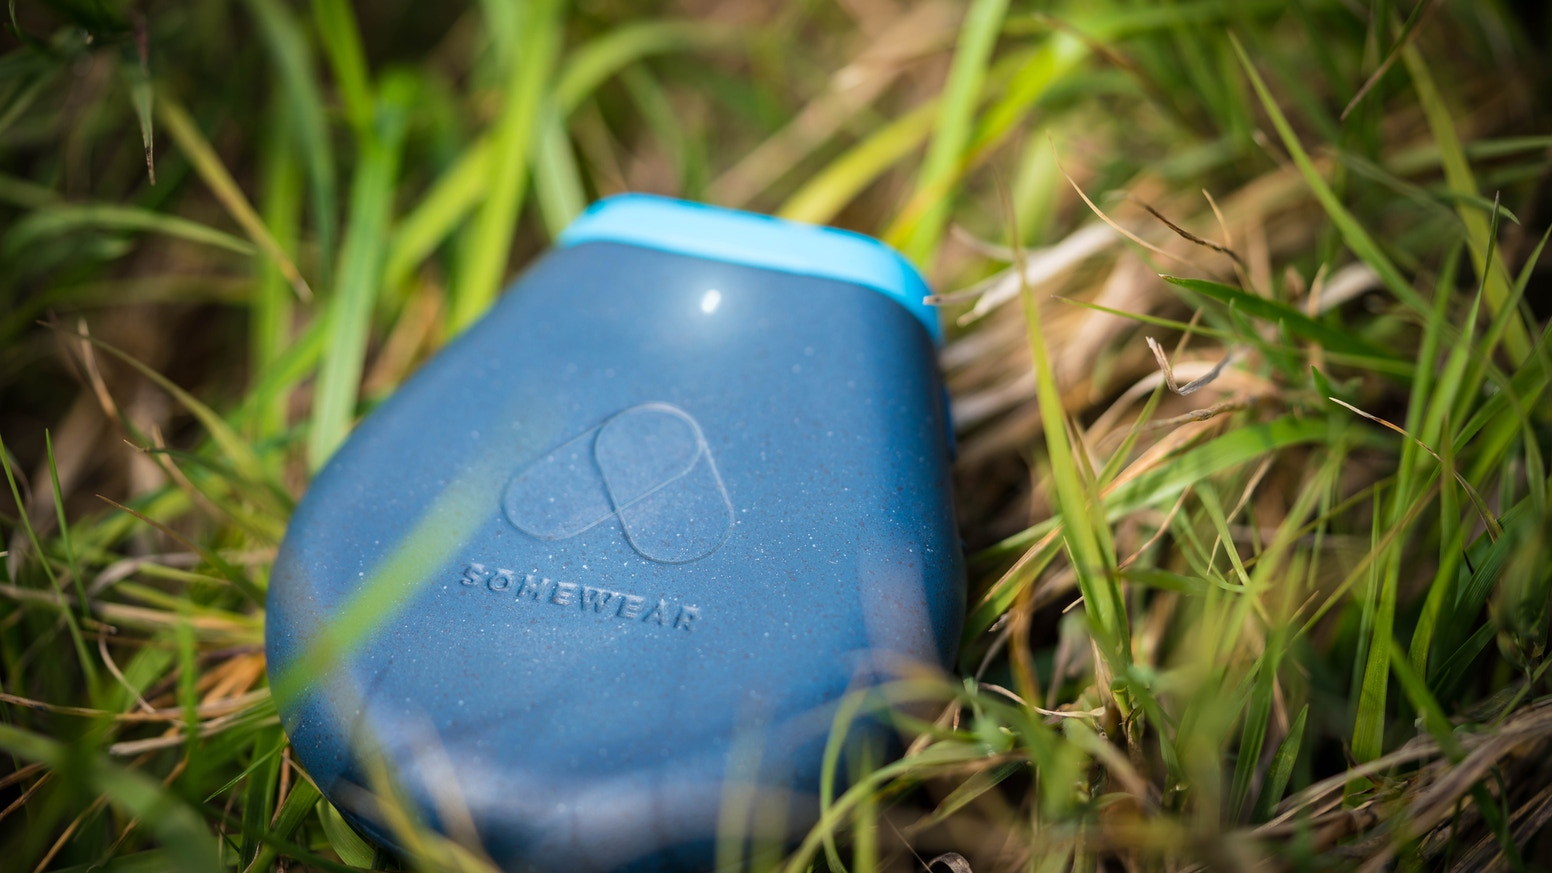 A global, satellite hotspot that brings your friends on every adventure - beautifully designed to fit in your pocket